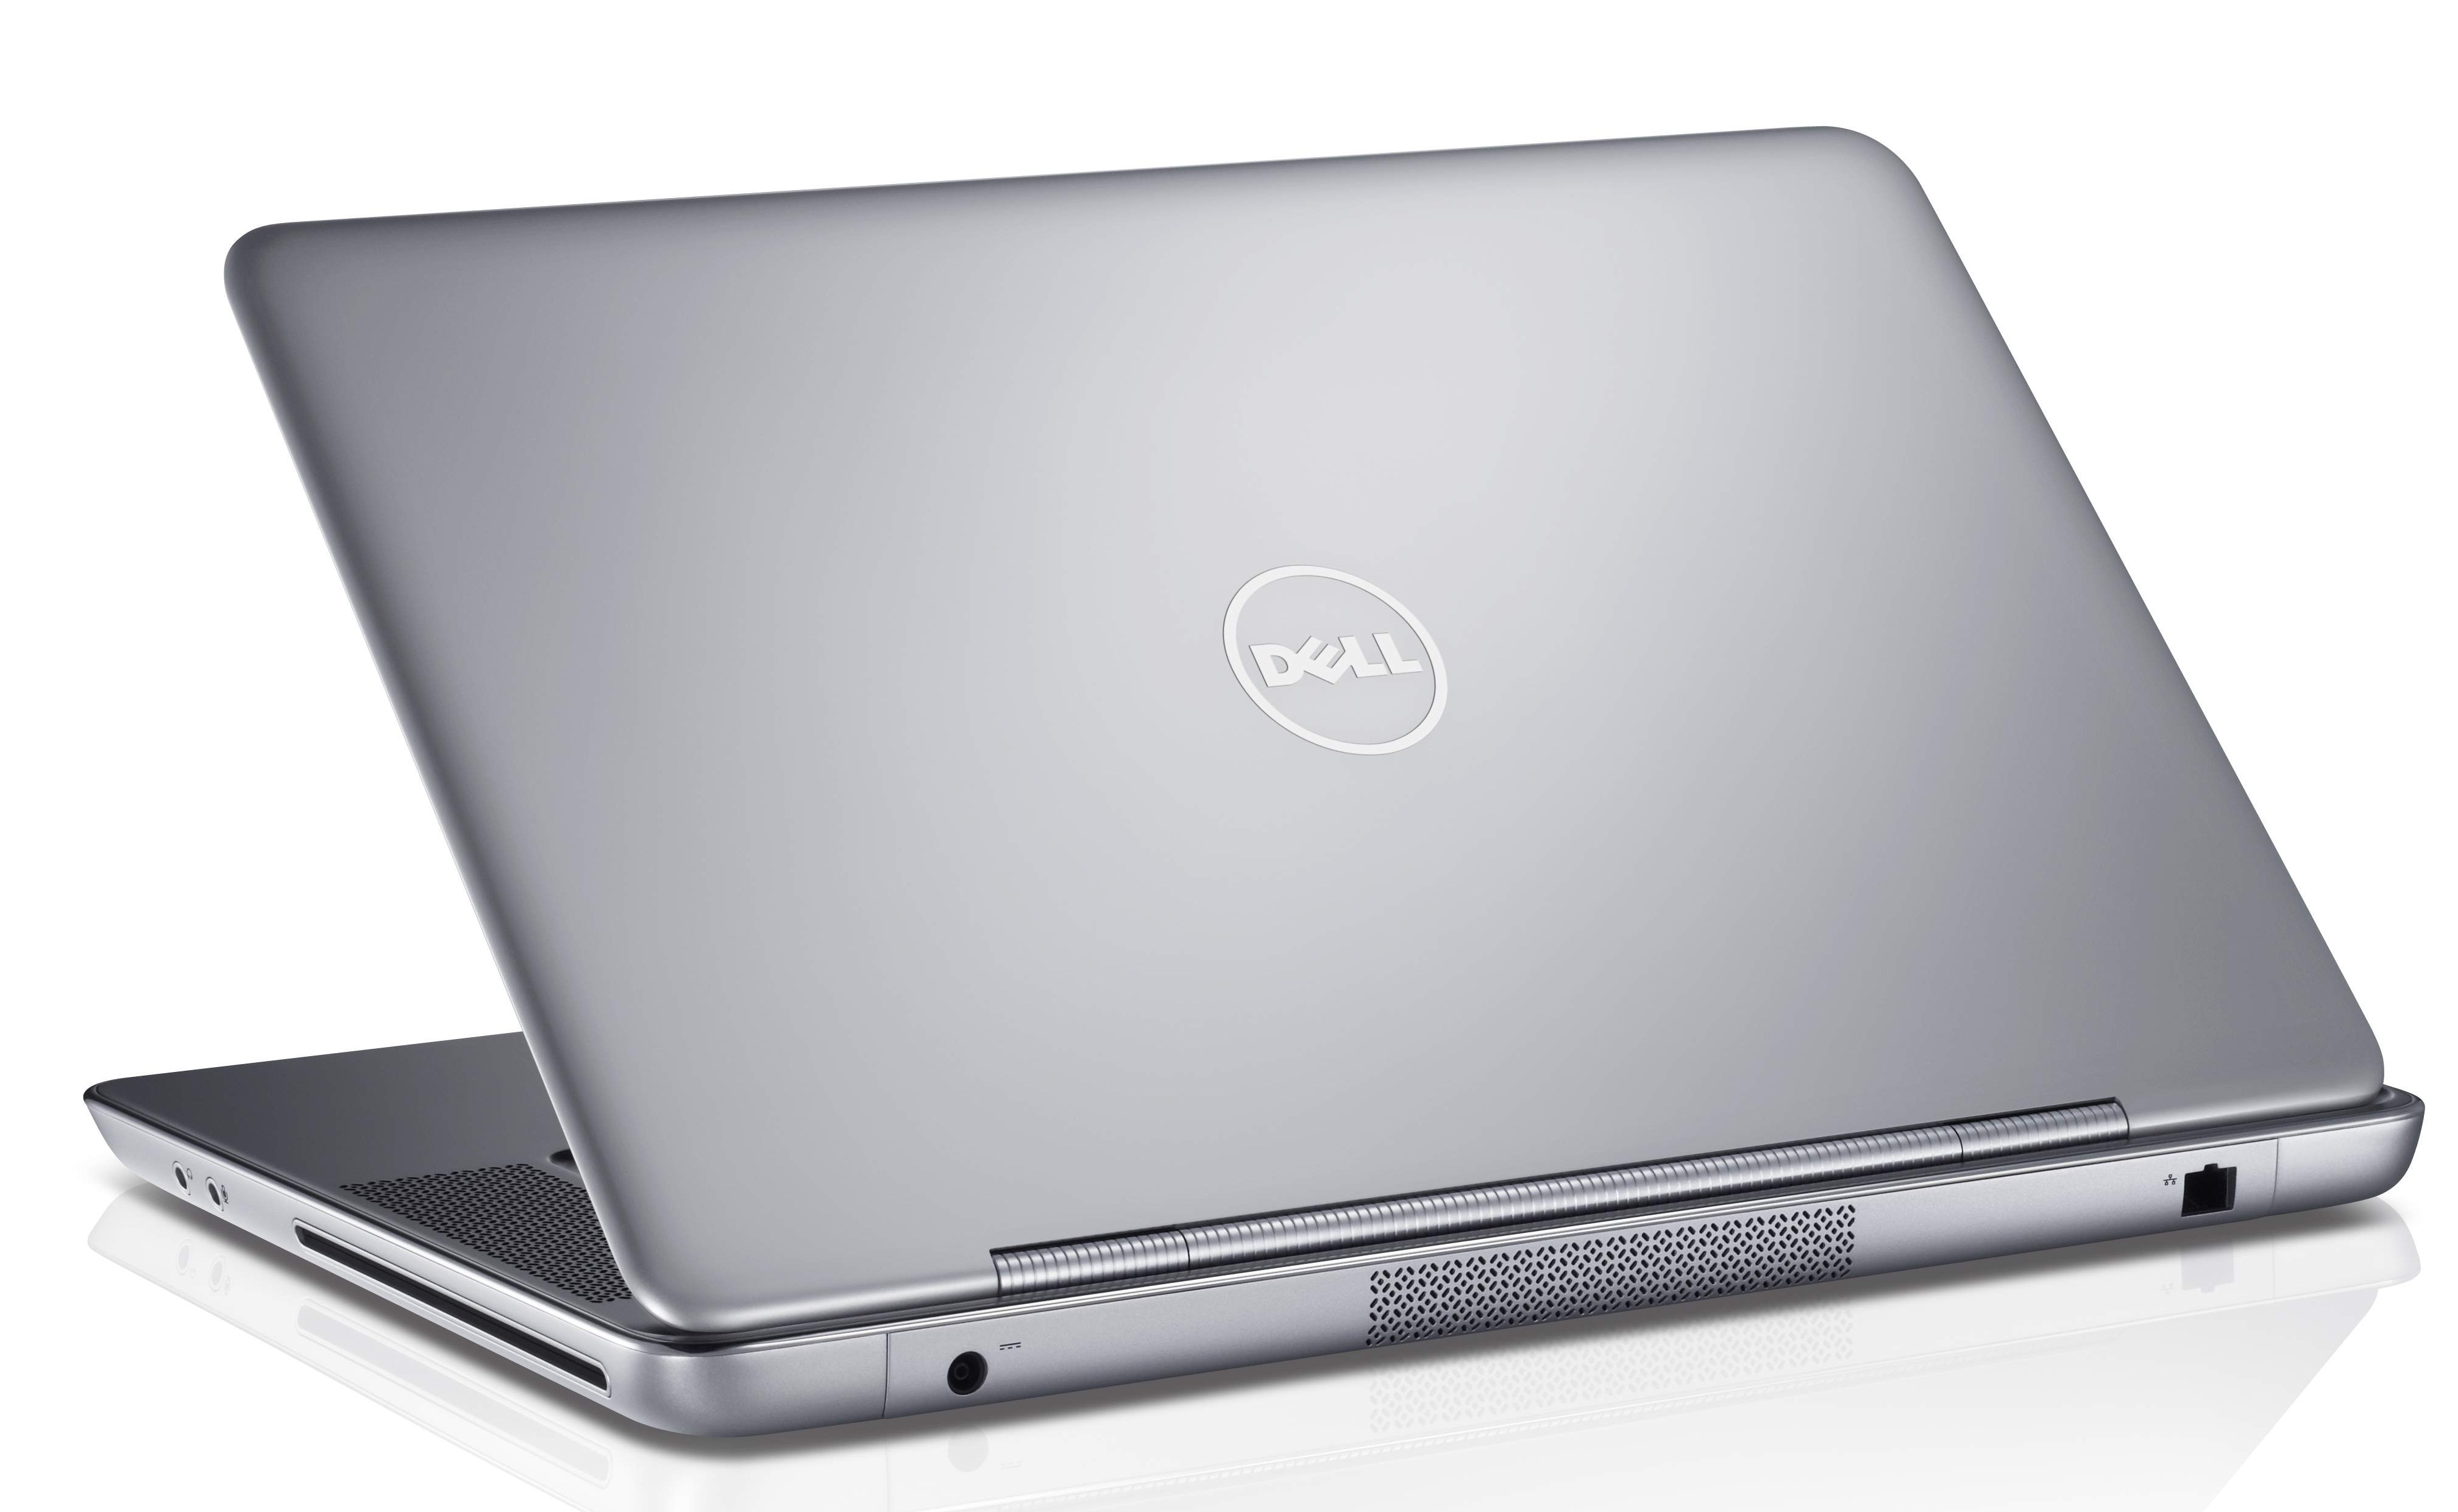 Dell XPS 15z Gallery